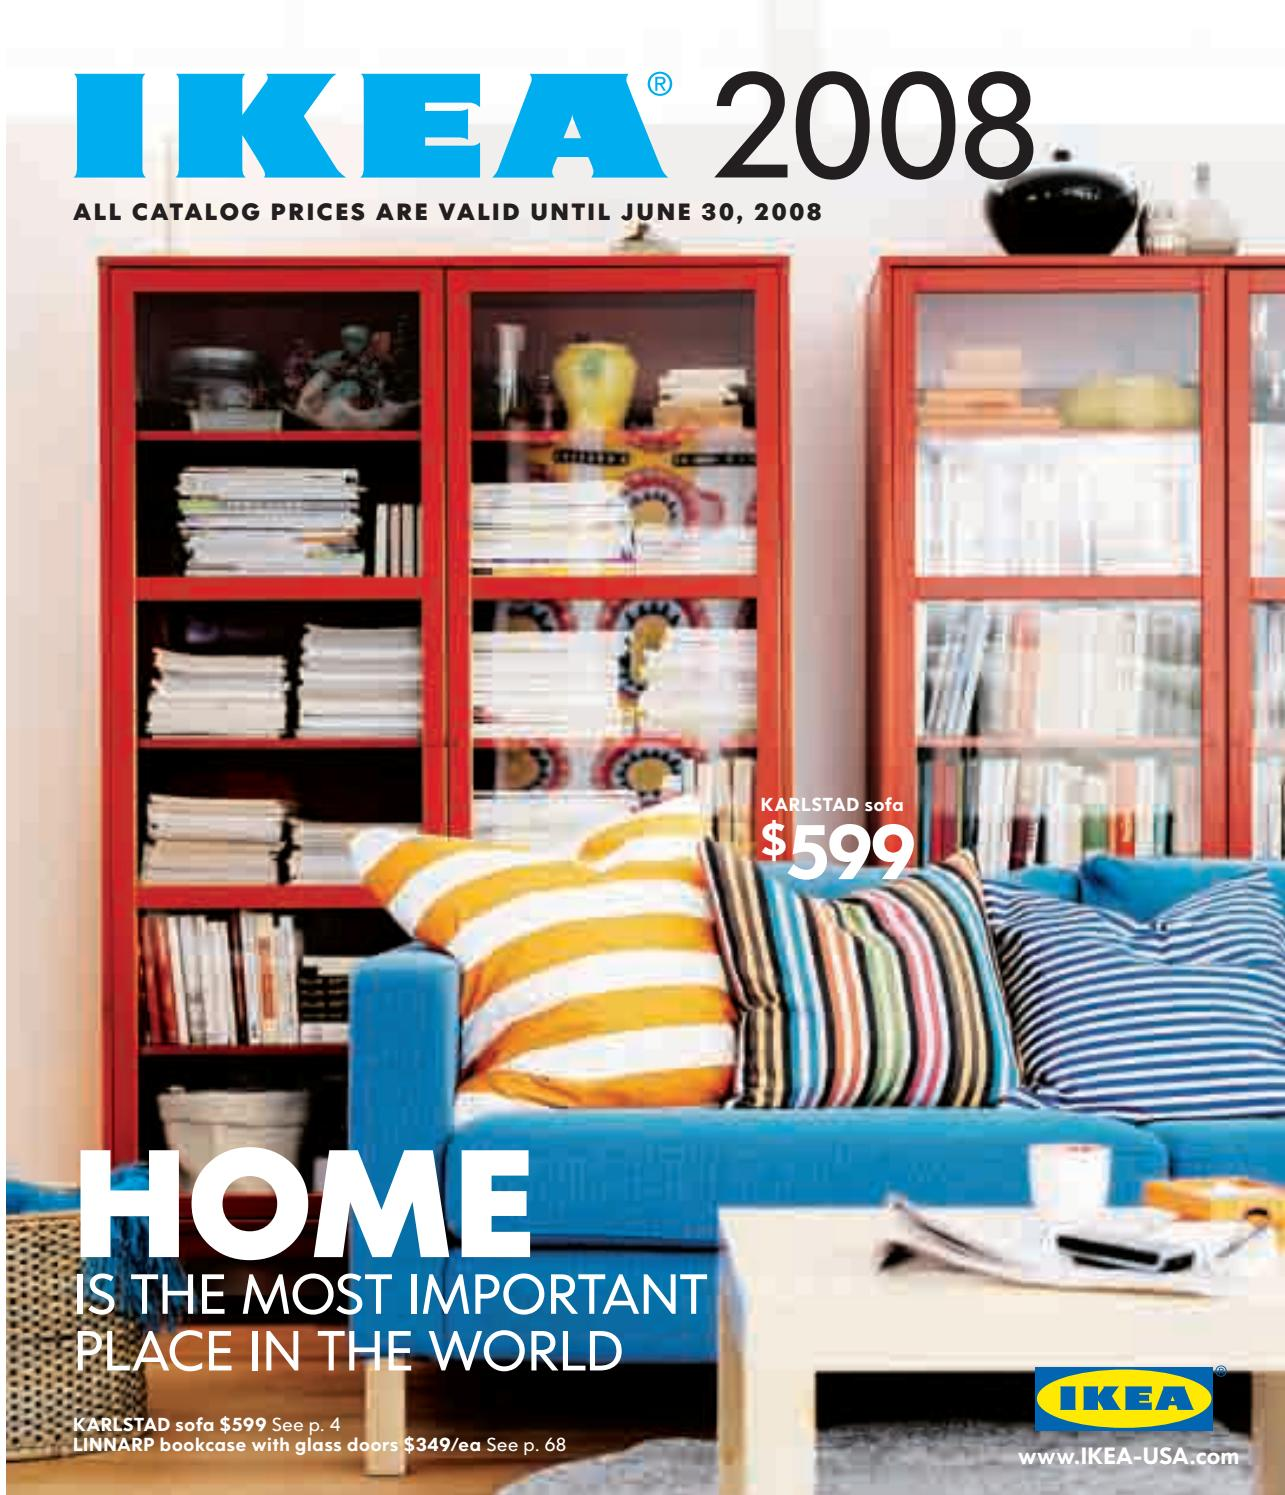 Admirable Ikea 2008 By Mark Van Dongen Issuu Download Free Architecture Designs Scobabritishbridgeorg